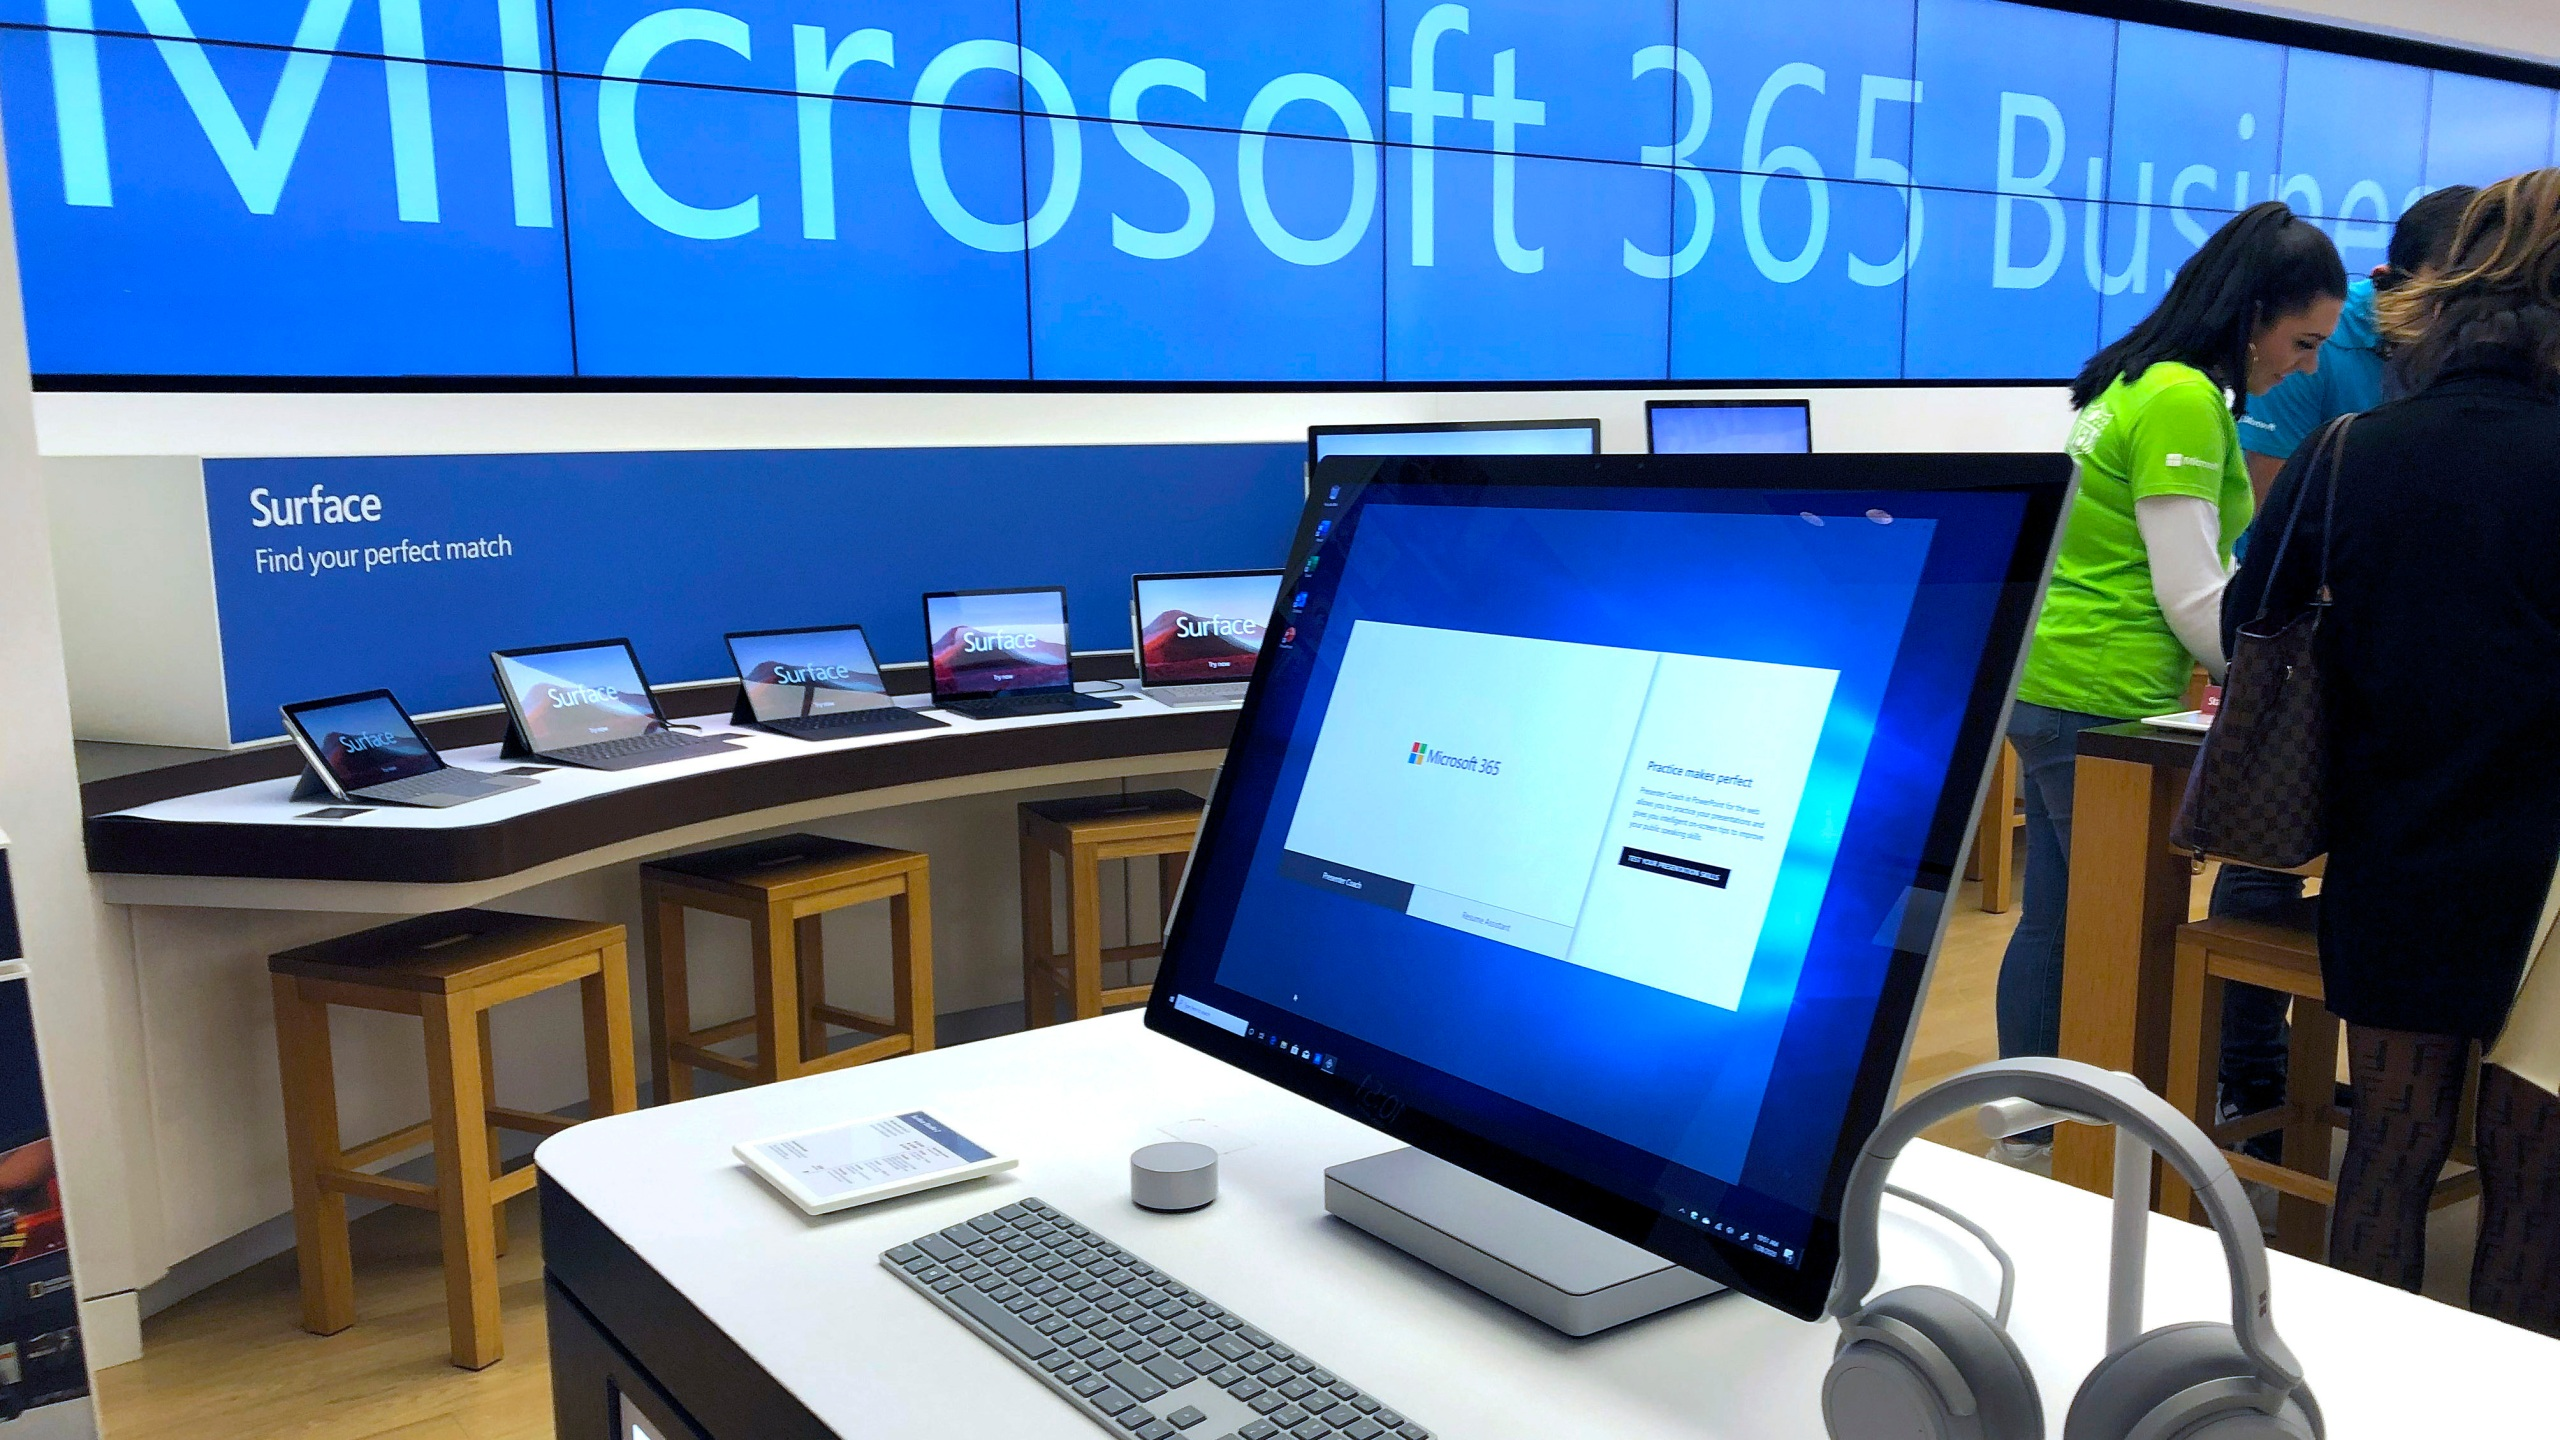 FILE - In this Jan. 28, 2020, file photo a Microsoft computer is among items displayed at a Microsoft store in suburban Boston. Microsoft said Friday, June 26, it is permanently closing nearly all of its physical stores around the world. Like other retailers, the software and computing giant had to temporarily close all of its stores in late March due to the COVID-19 pandemic. (AP Photo/Steven Senne, File)